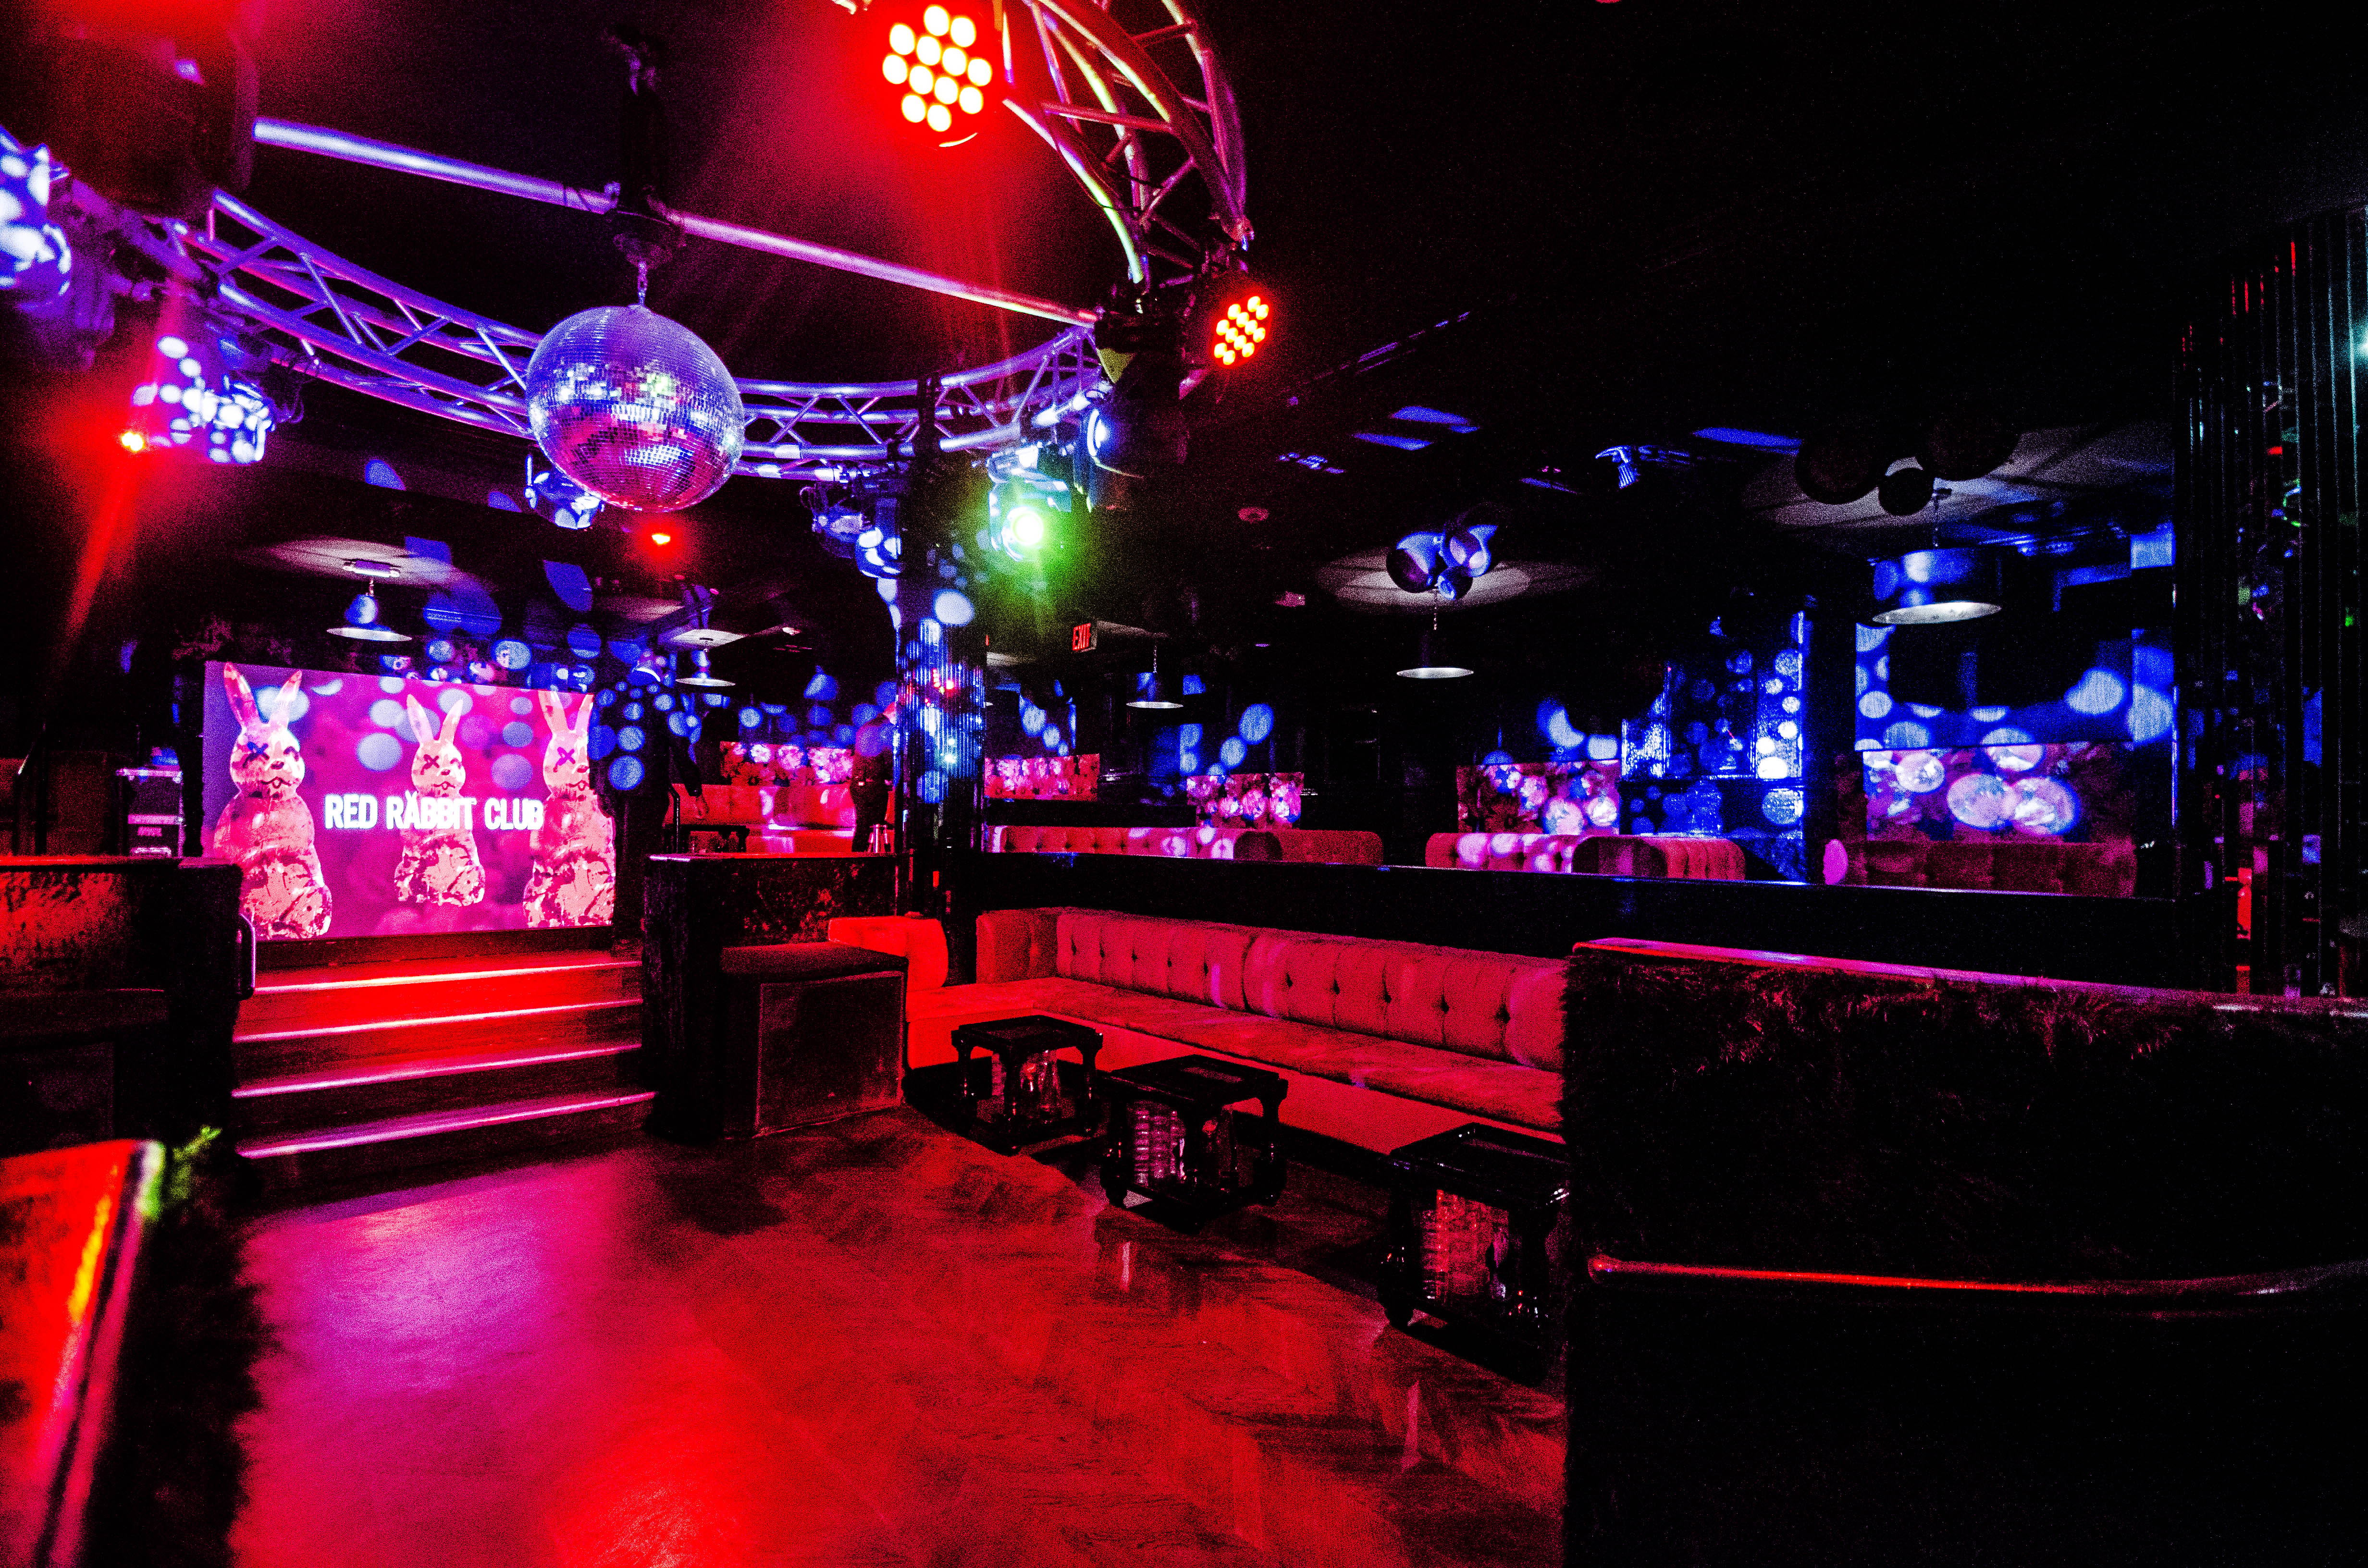 Photo #4 Full Venue at Red Rabbit Club